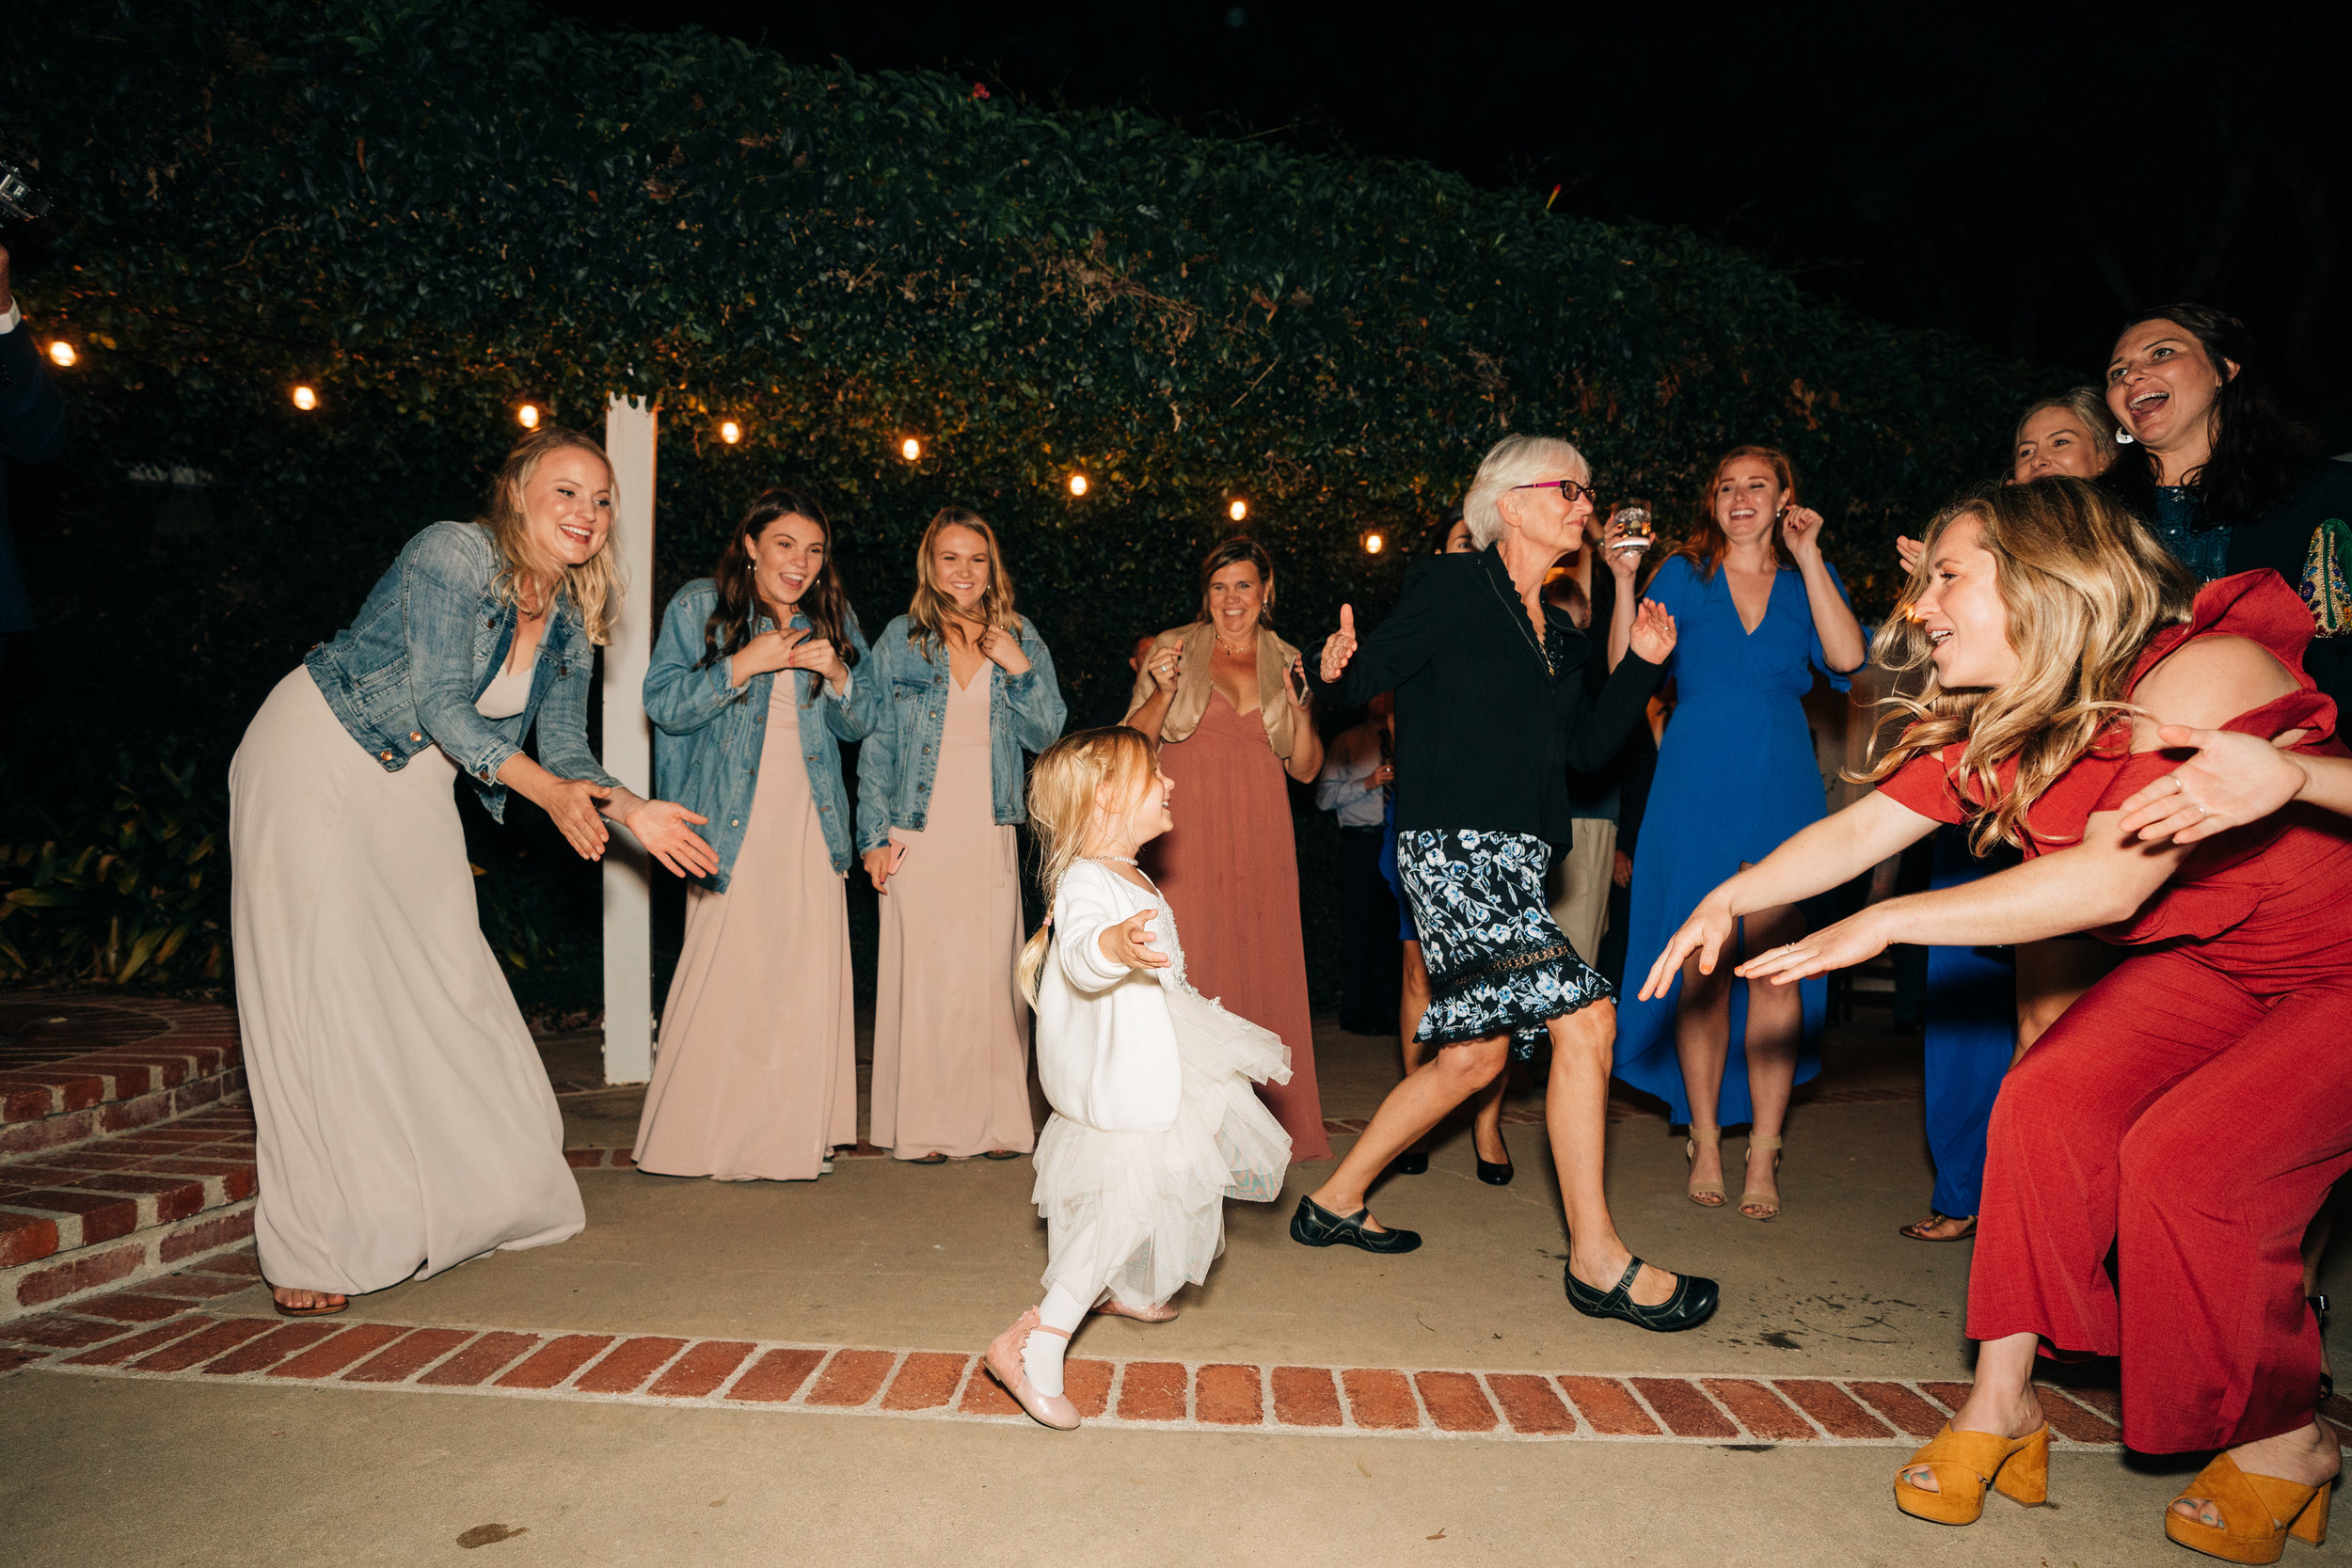 allie-shupe-tyler-wiggins-wedding-santa-barbara 222.jpg